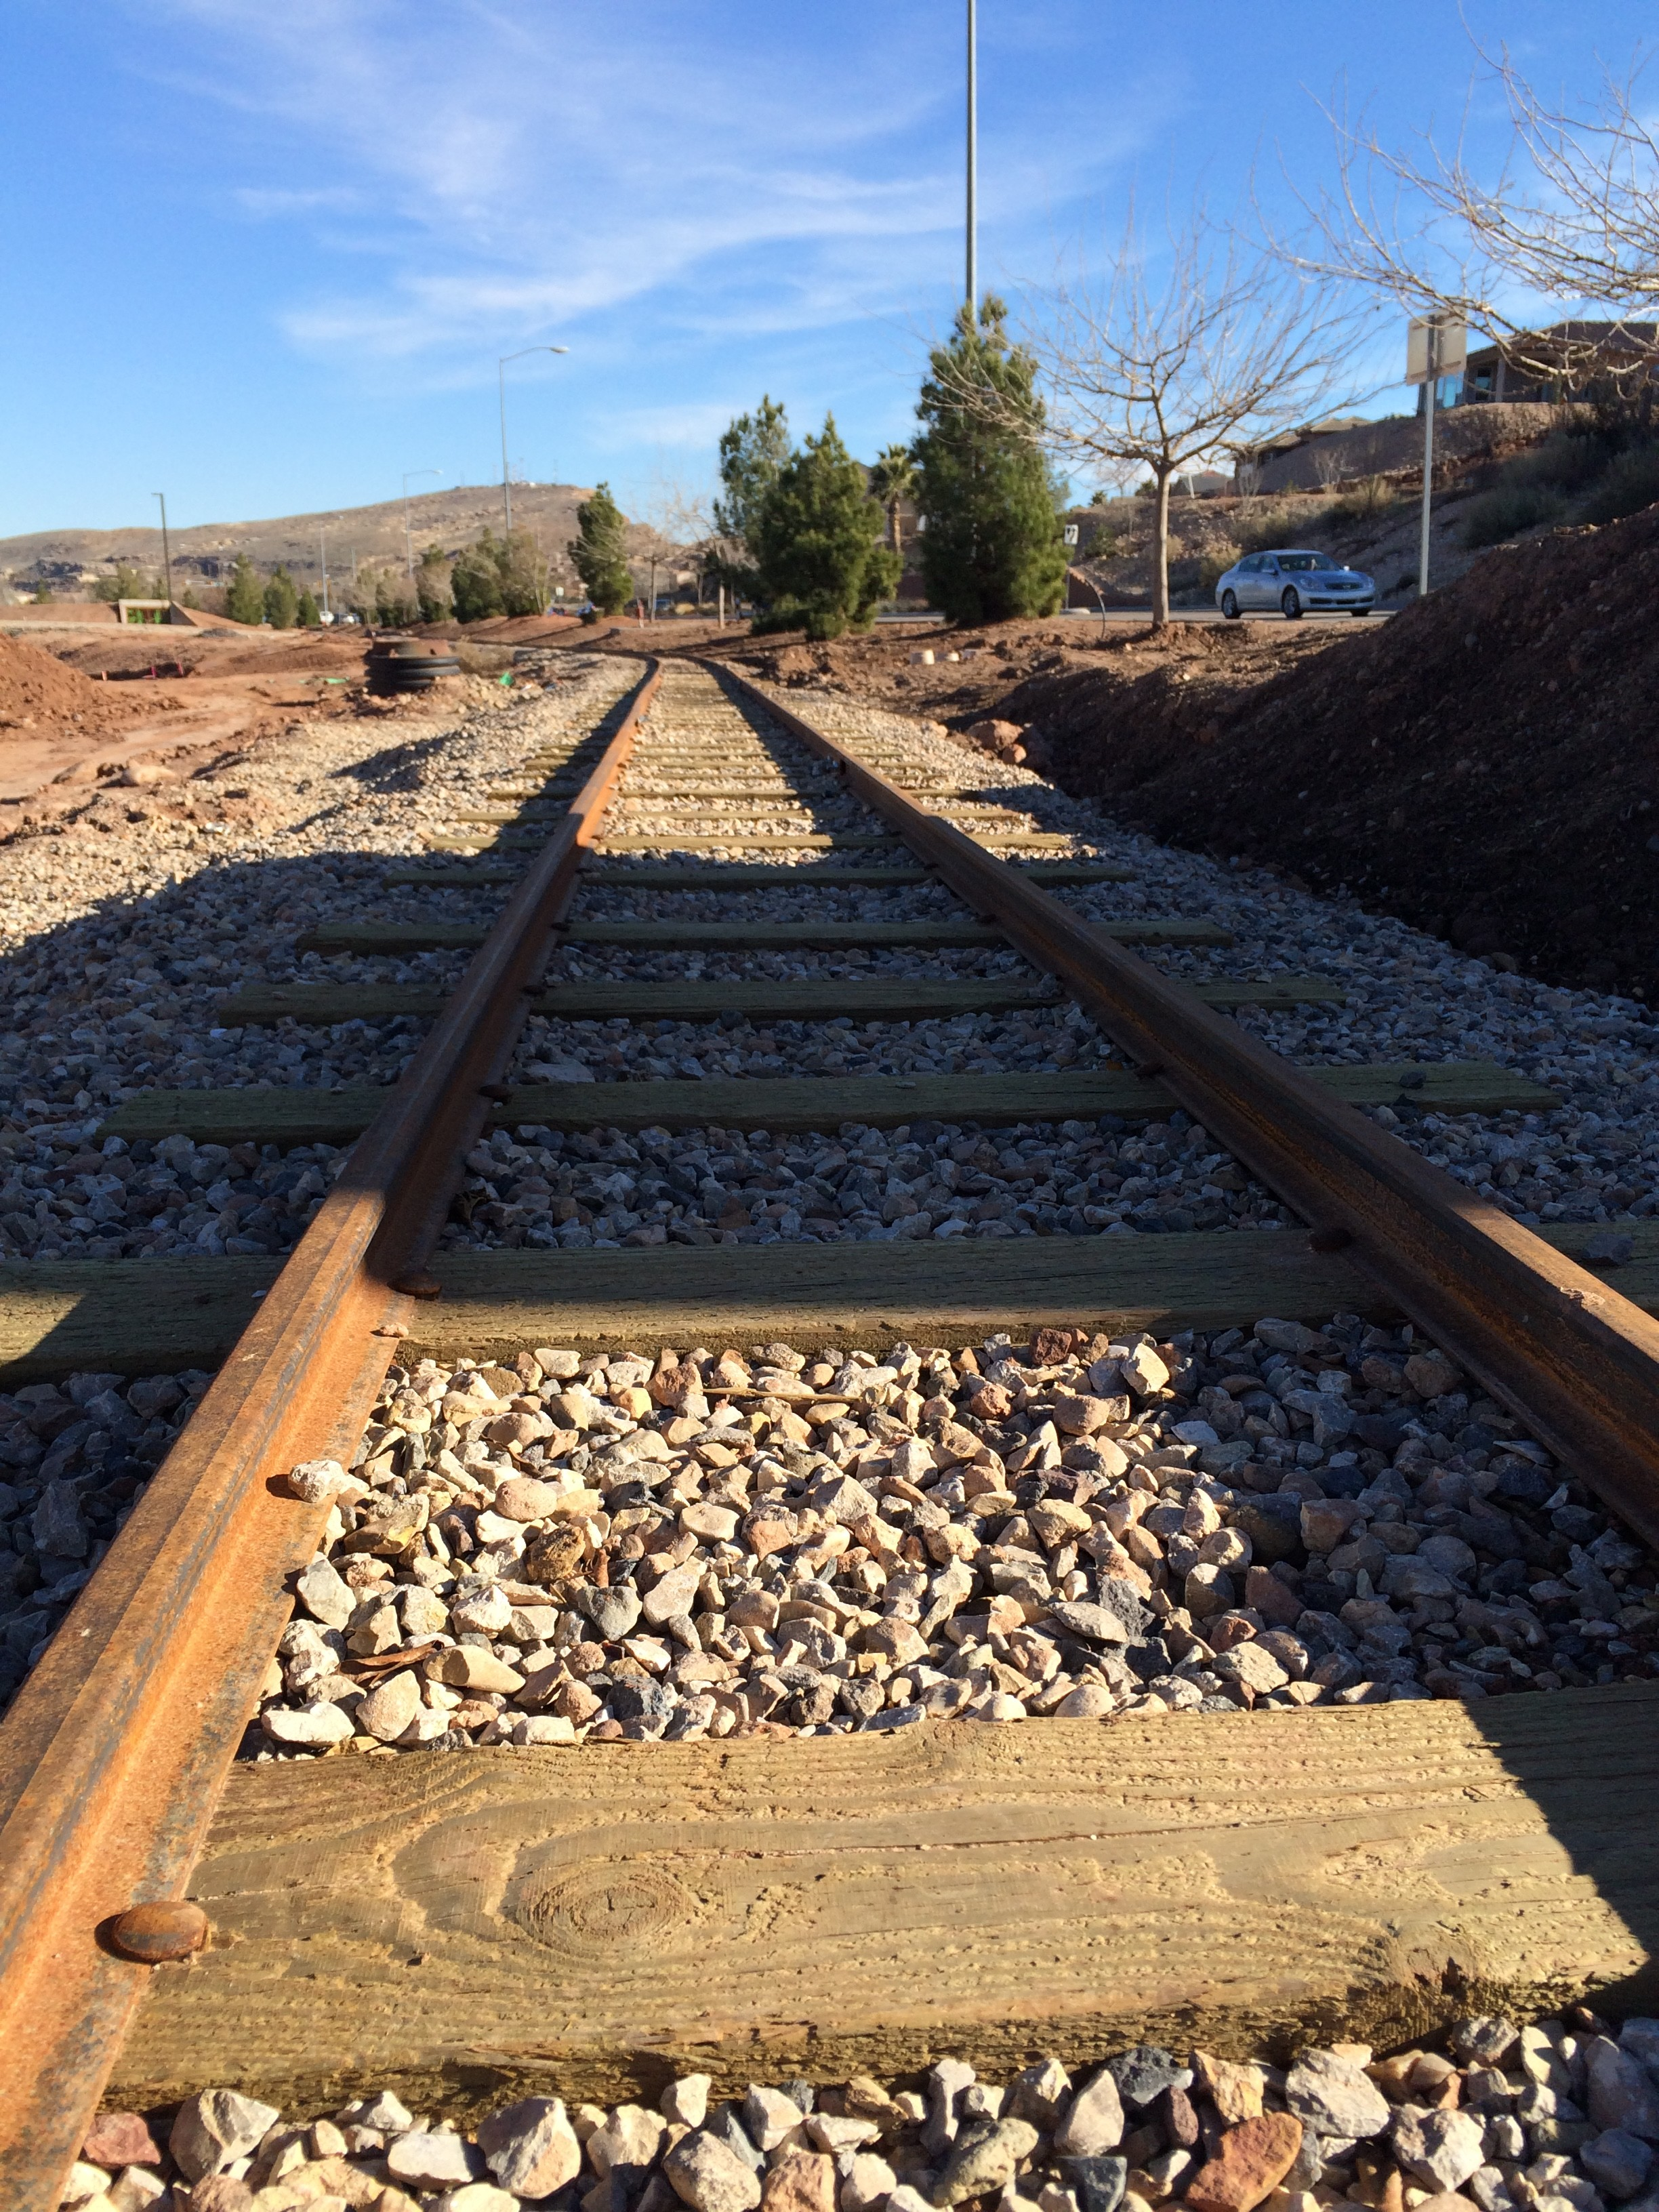 Train tracks at the St. George All Abilities Park and Playground, St. George, Utah, Feb. 5, 2016 | Photo by Don Gilman, St. George News